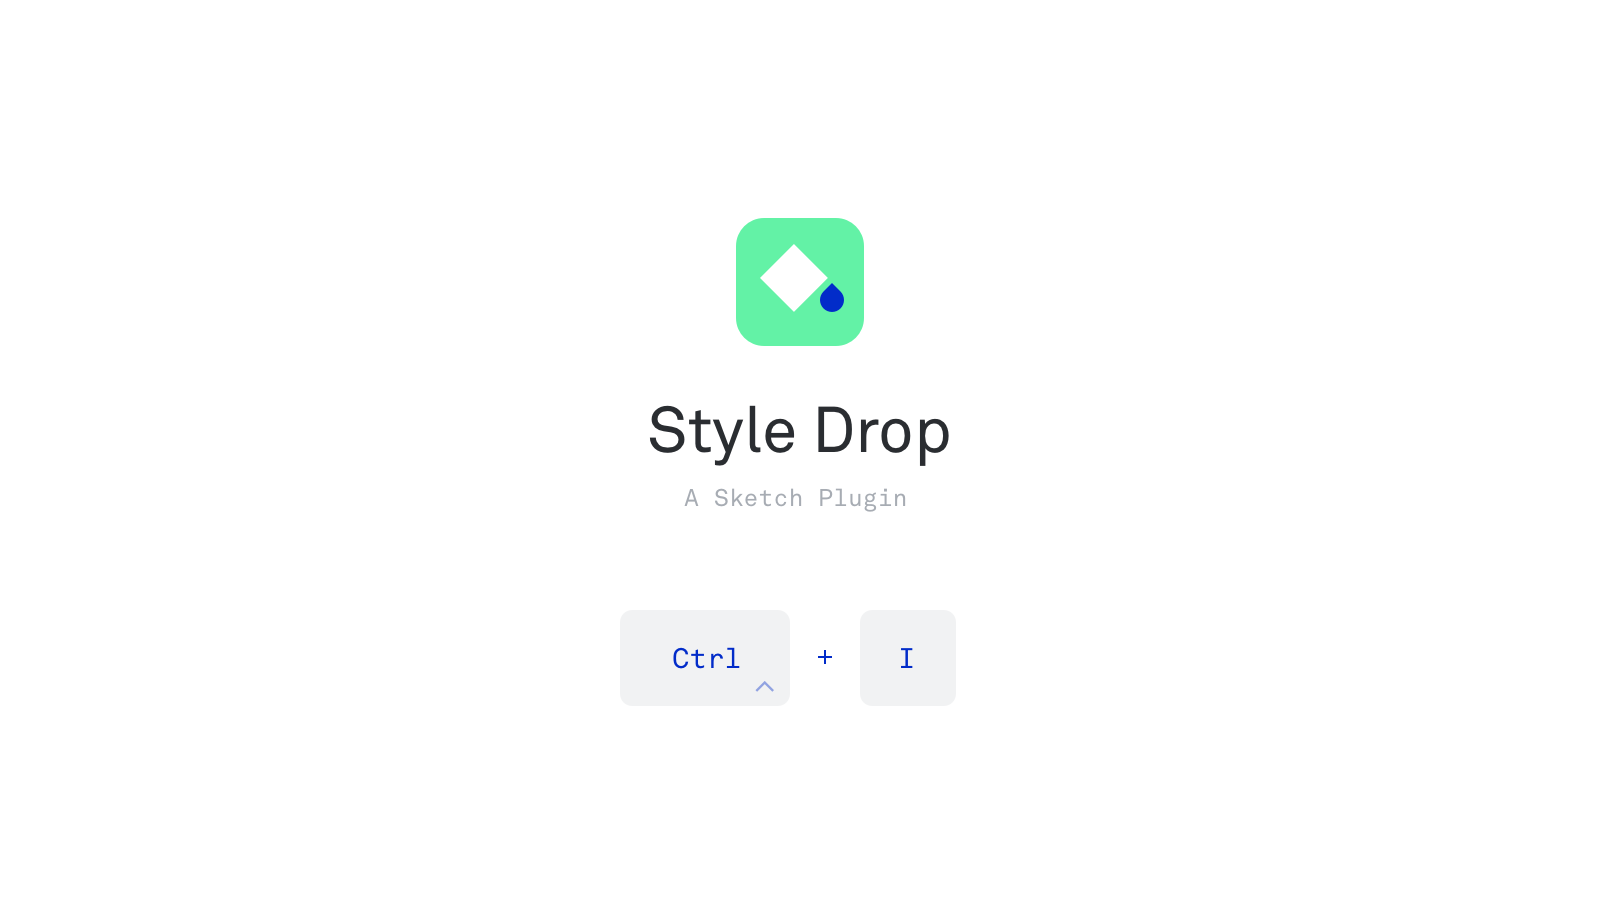 Style Drop Plugin for Sketch App. Press and hold Control key and the I key.